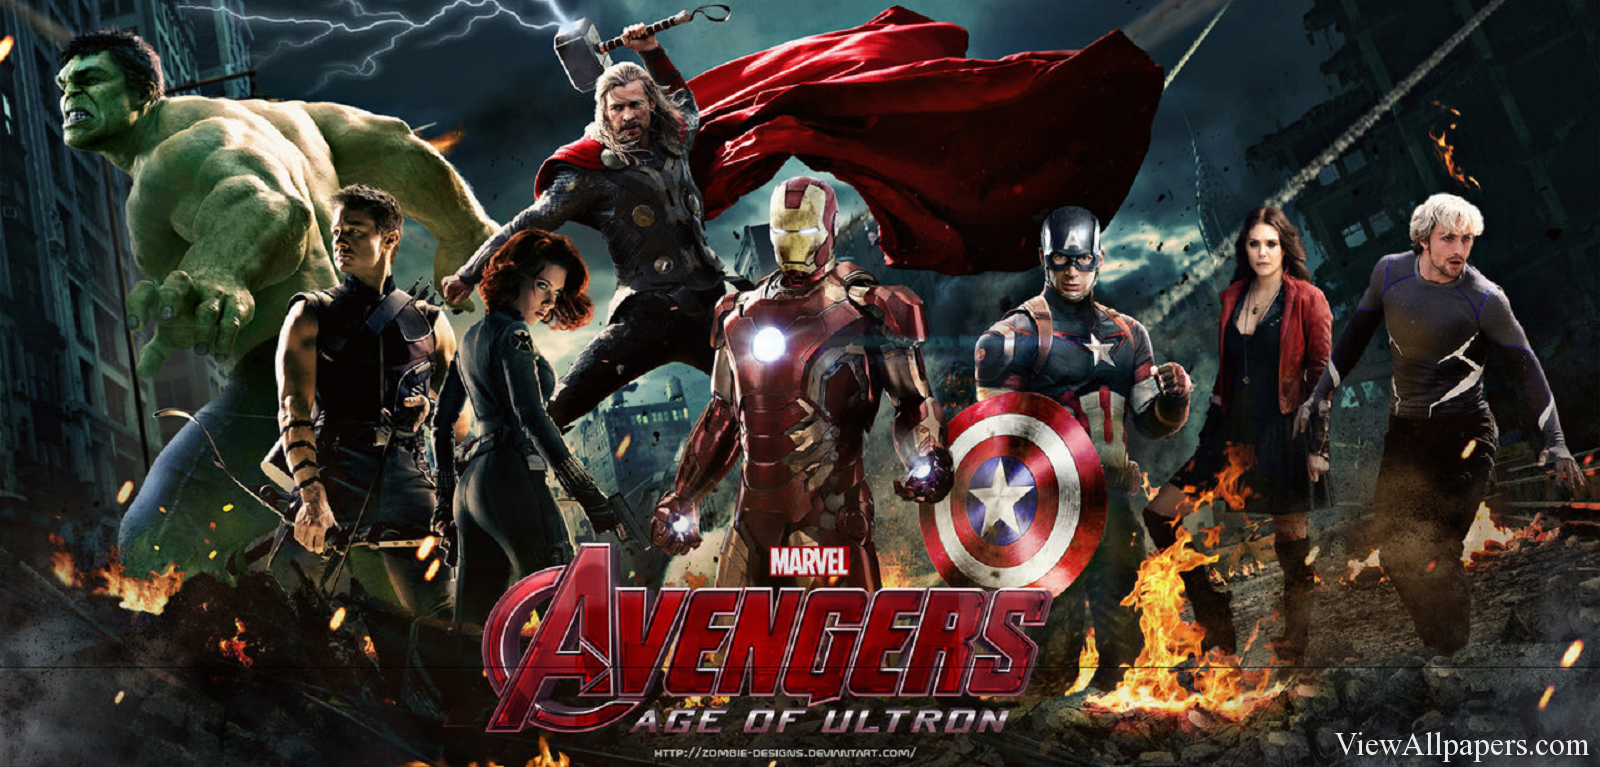 Avengers Age Of Ultron Poster High Resolution Wallpaper download 1600x767